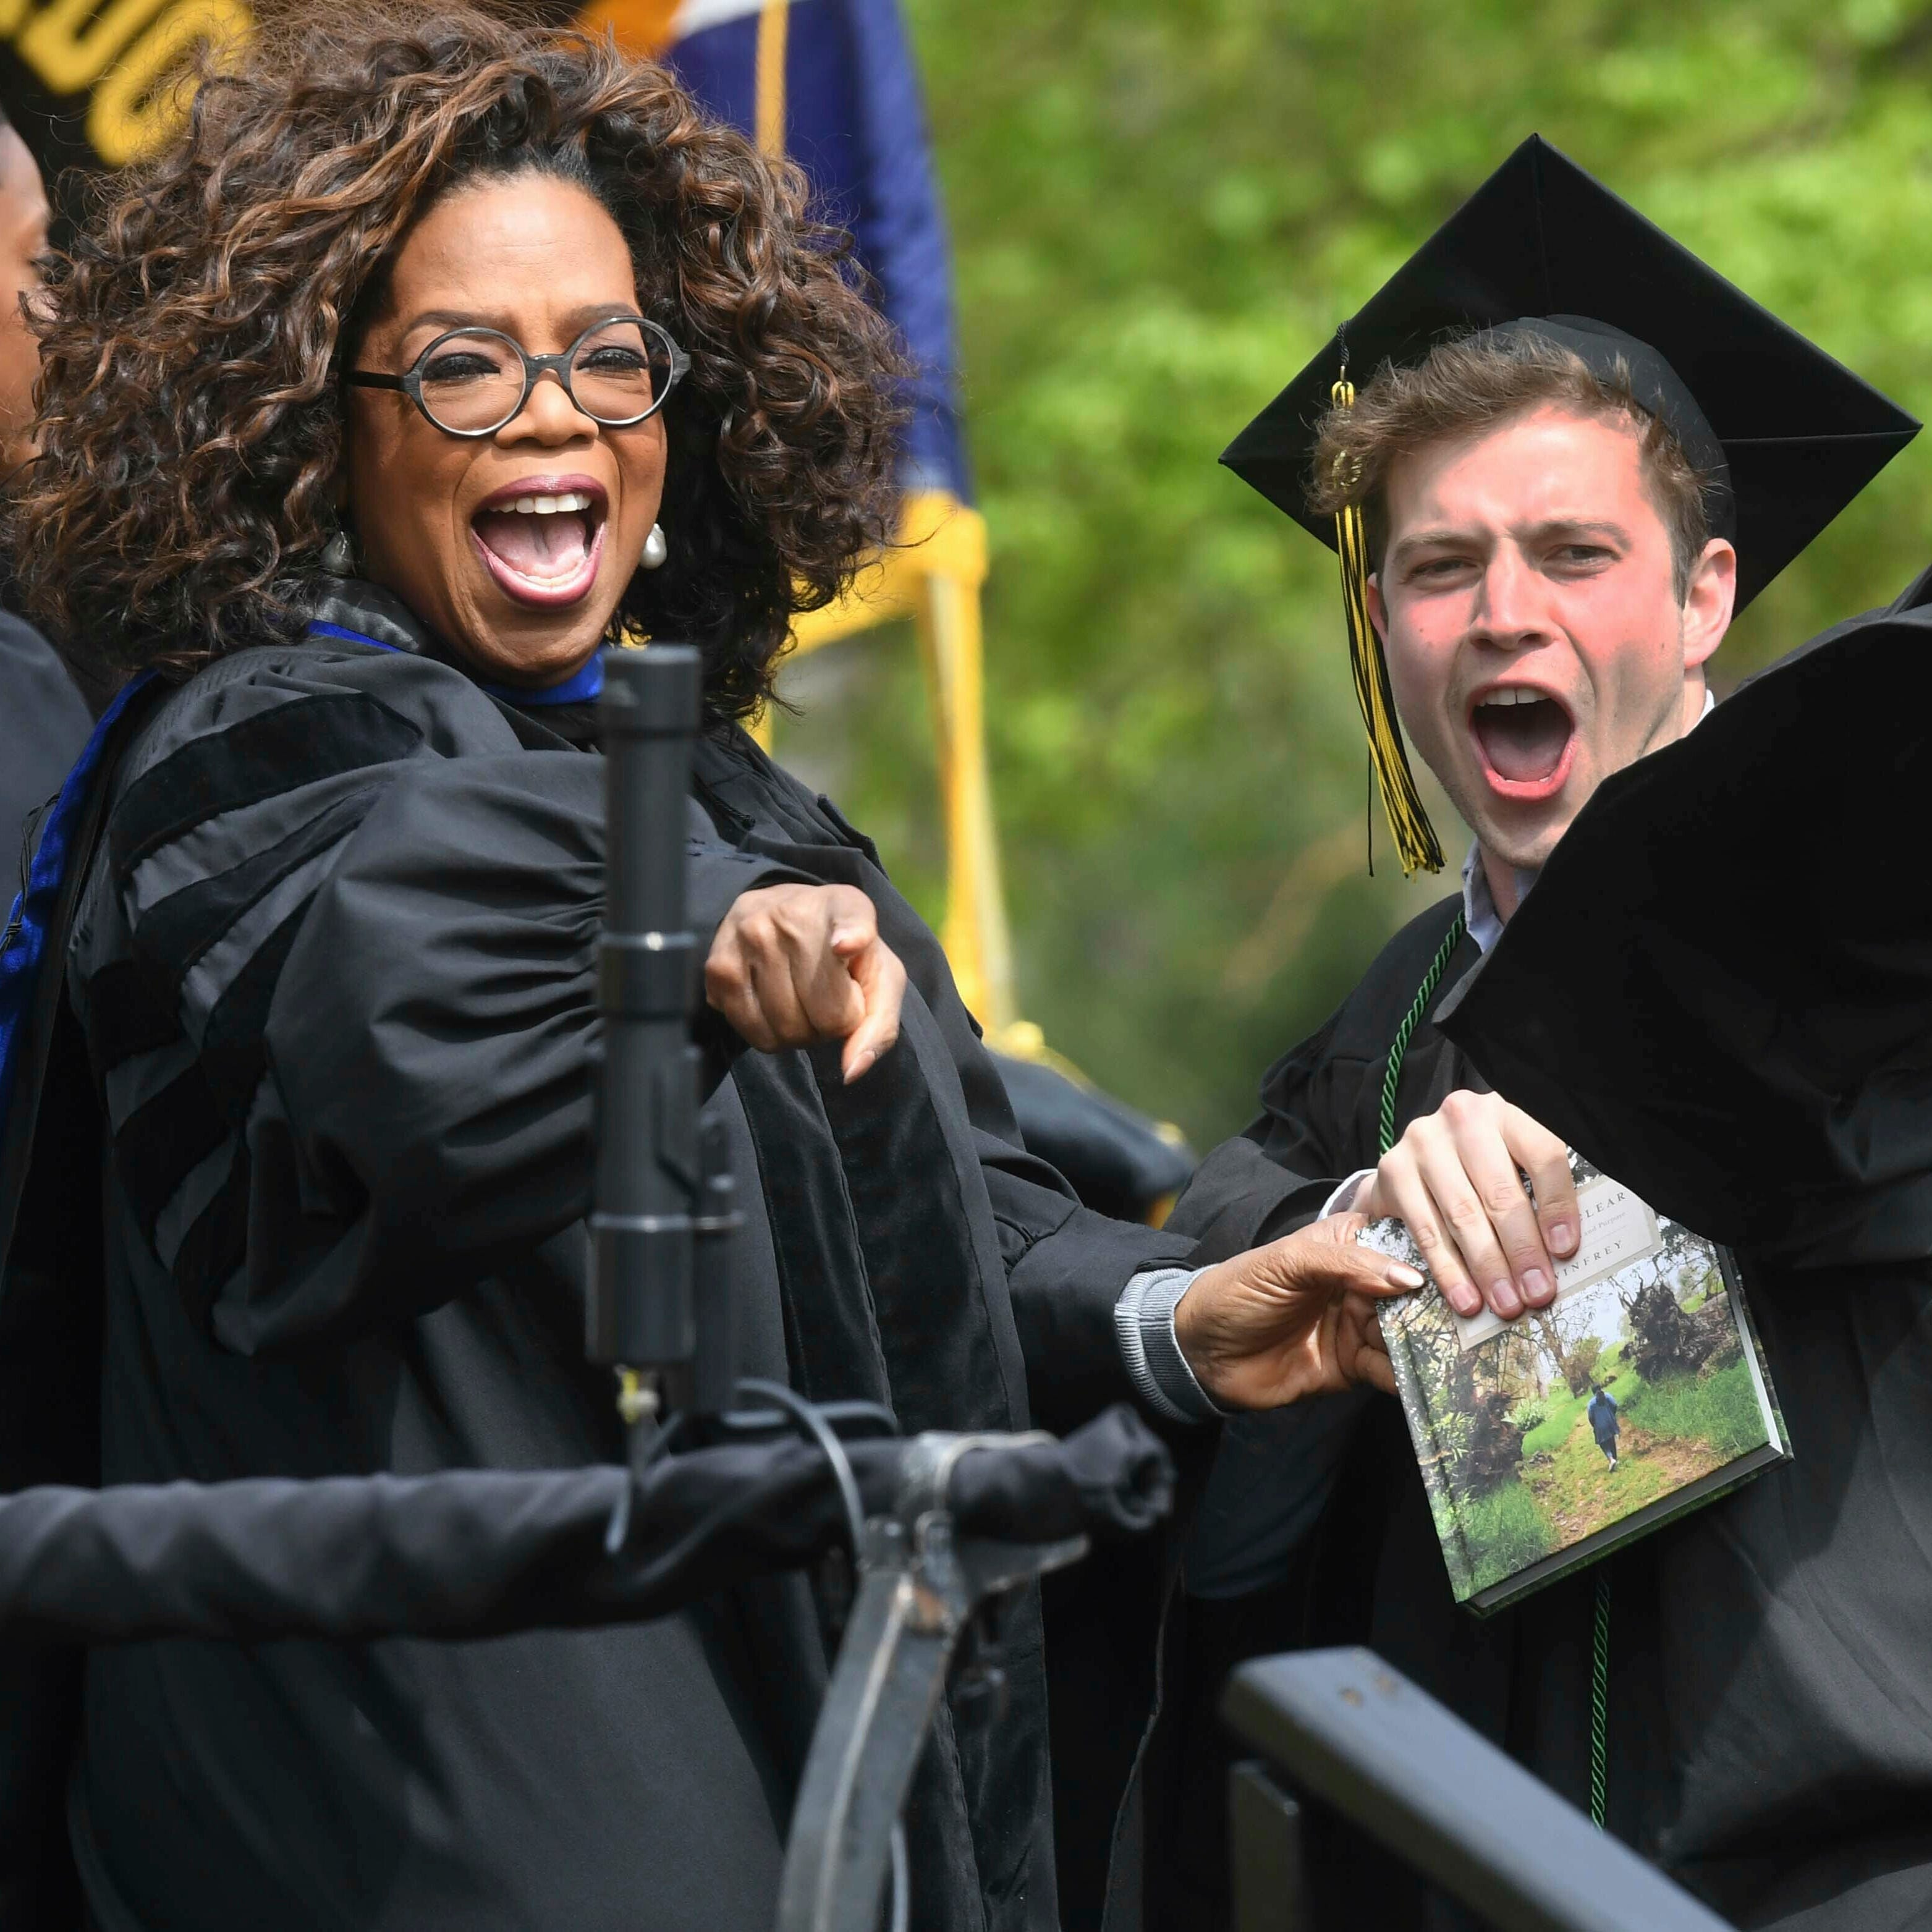 Commencement speaker Oprah Winfrey at Colorado College in Colorado Springs on May 19, 2019.